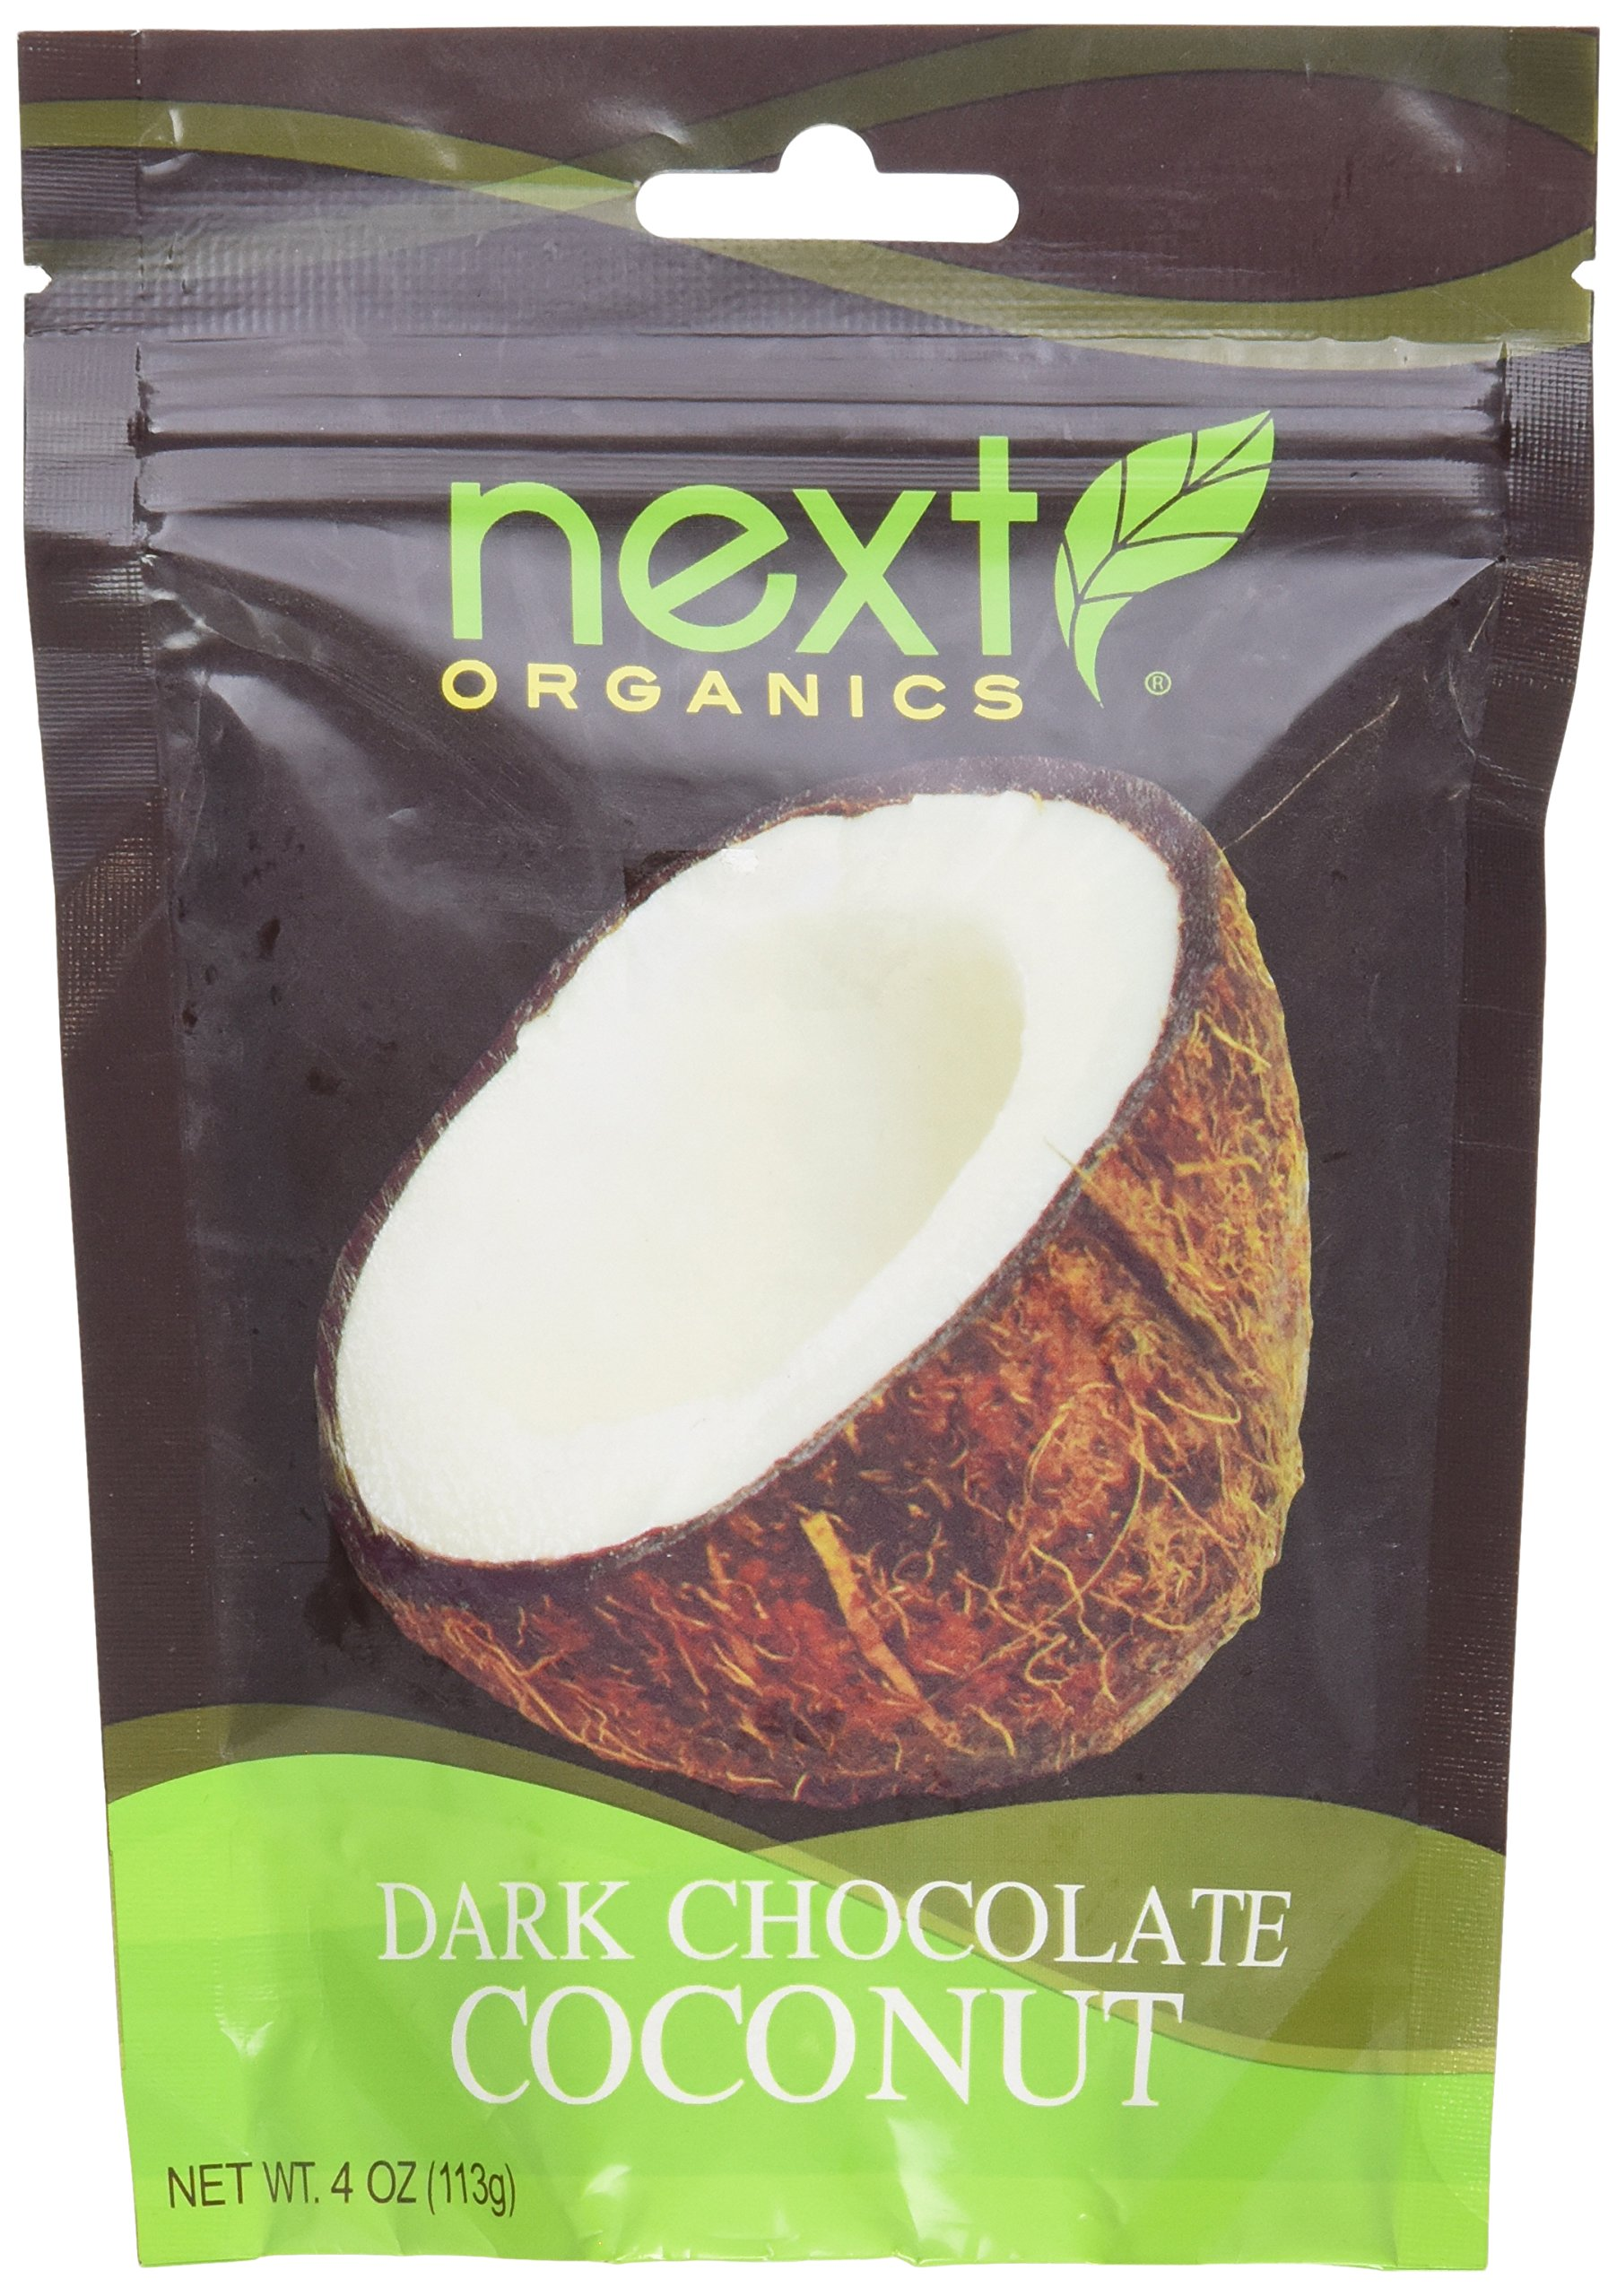 Next Organics Chocolate Covered Fruit Coconut Dark O, 4 oz by Next Organics (Image #1)